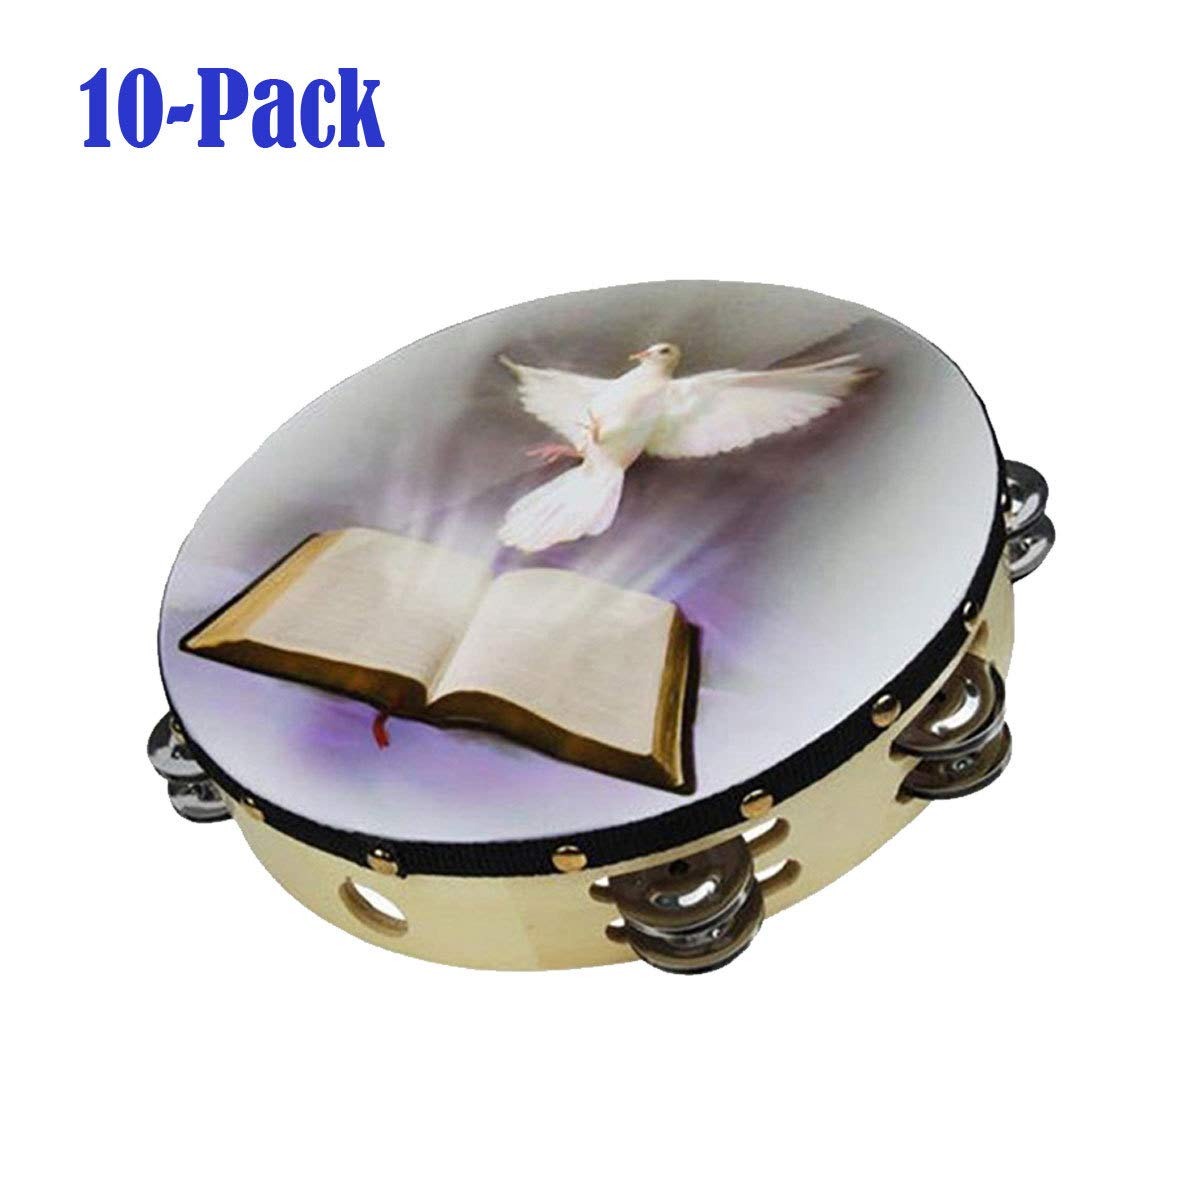 10-Pack 10'' Dove Bible Tambourine Double Row Jingle Percussion Instrument Church